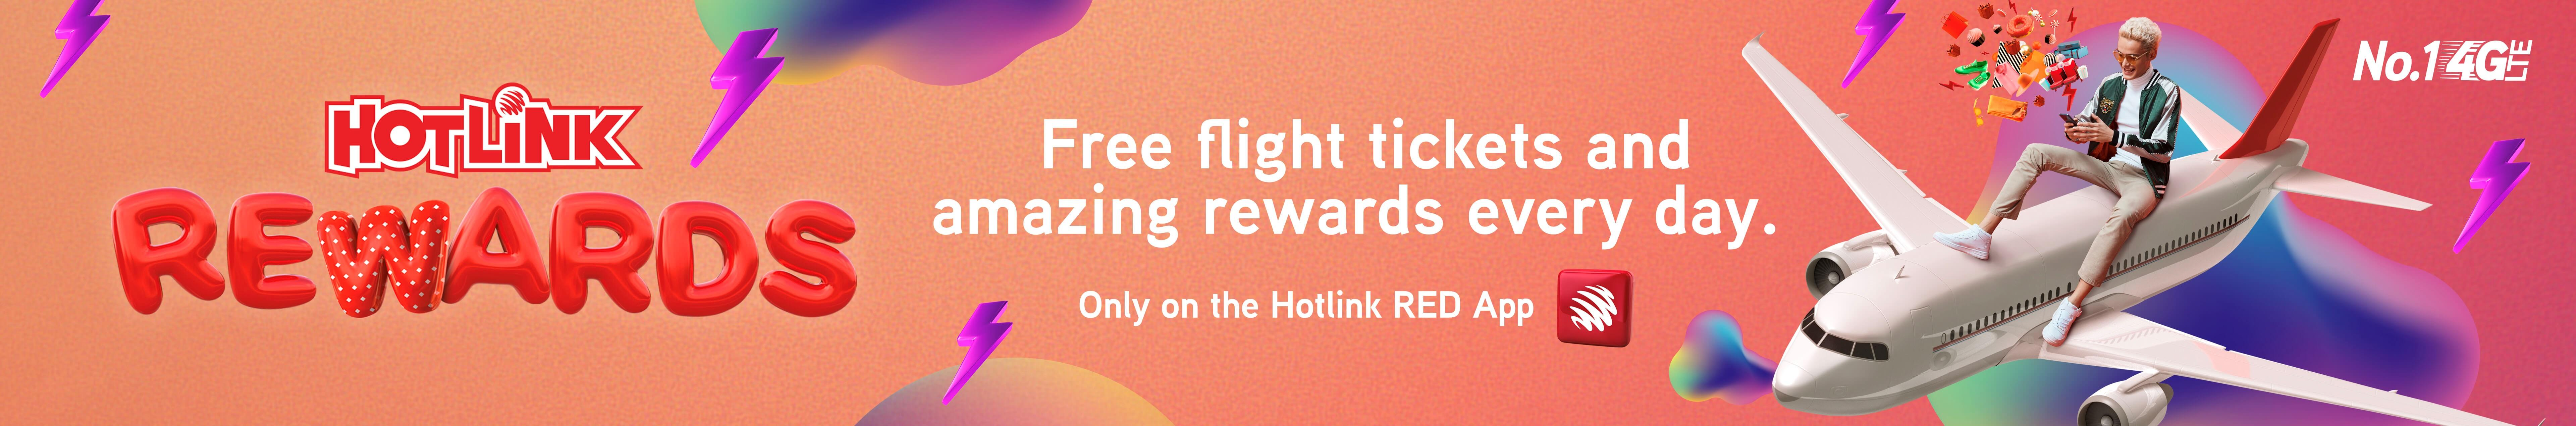 Hotlink rewards